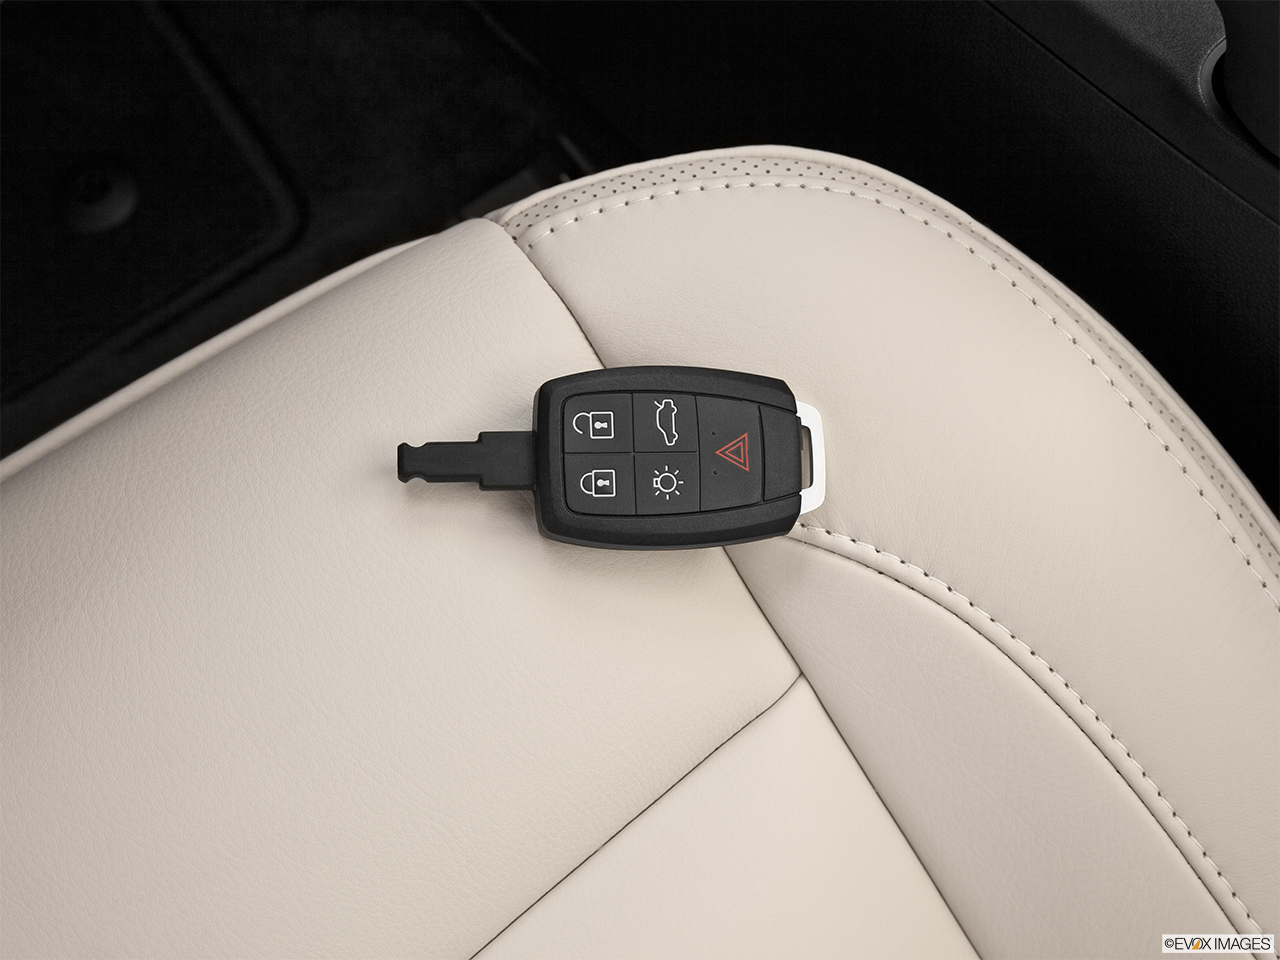 2013 Volvo C70 T5 Platinum Key fob on driver's seat.